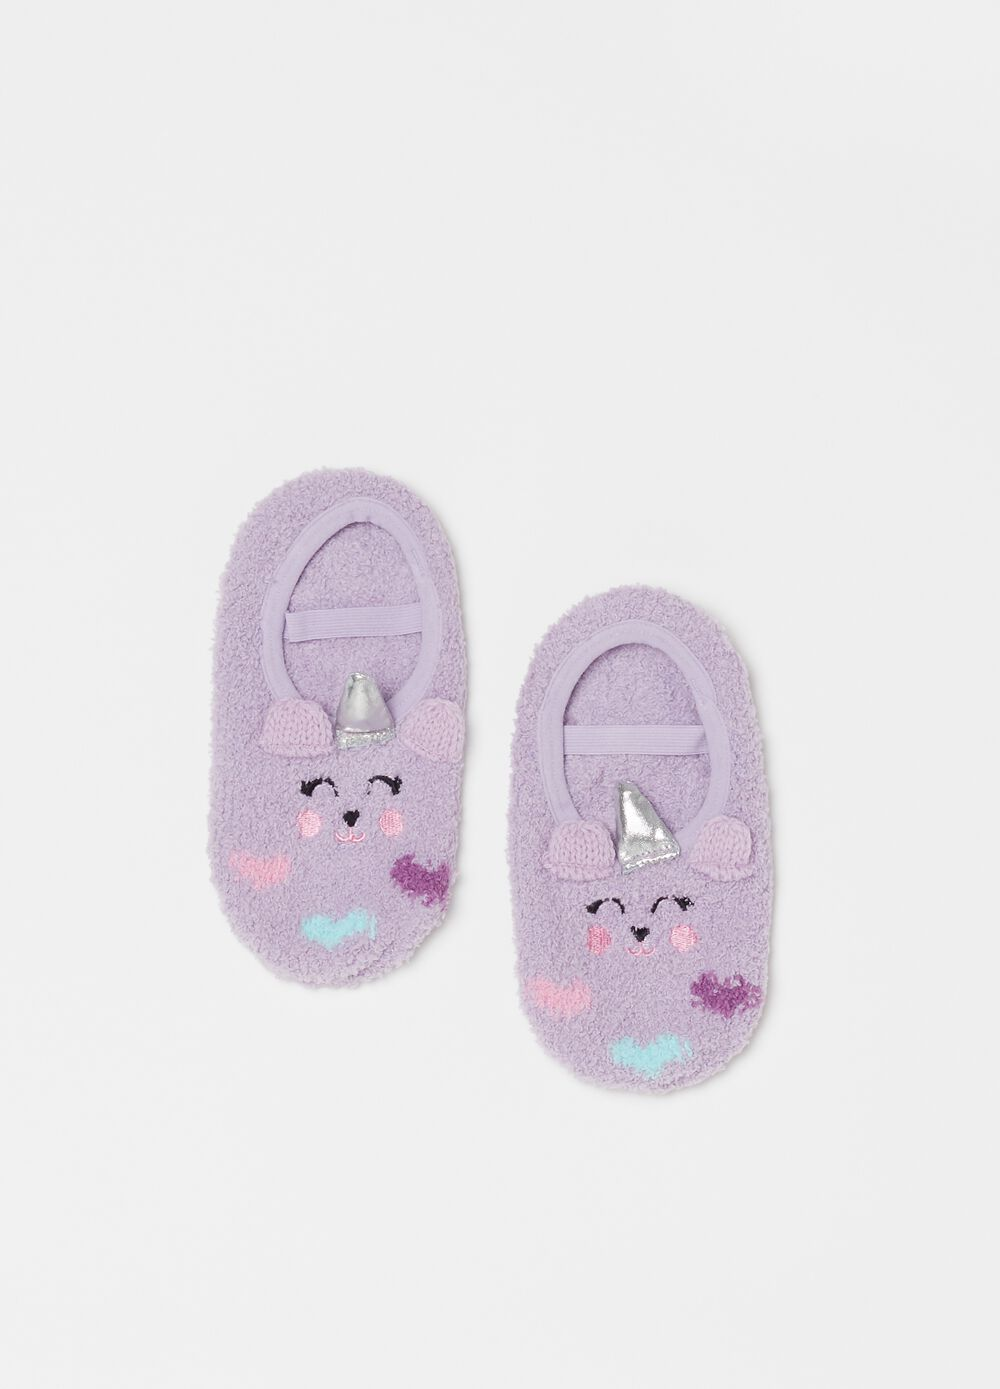 Slipper socks with strap and embroidery